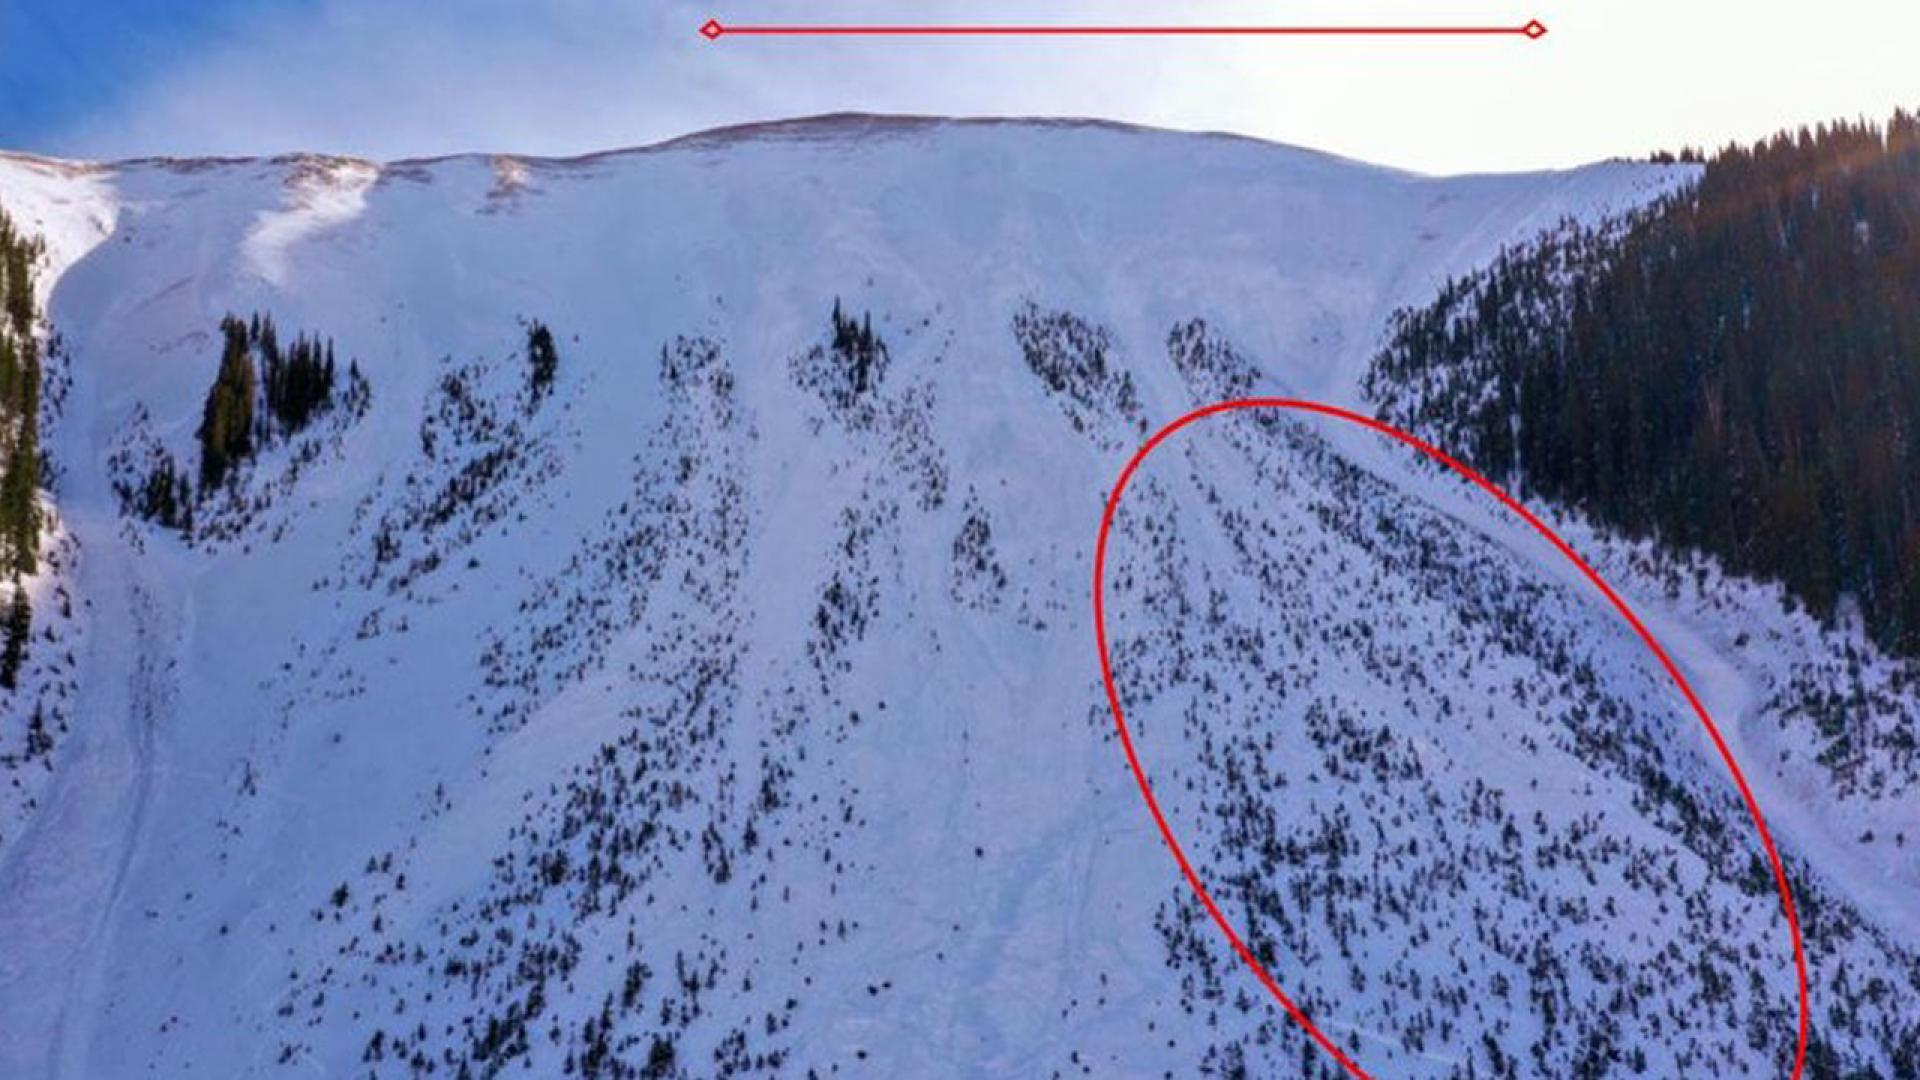 Three skiers were killed by avalanches in Colorado last weekend, according to reports.